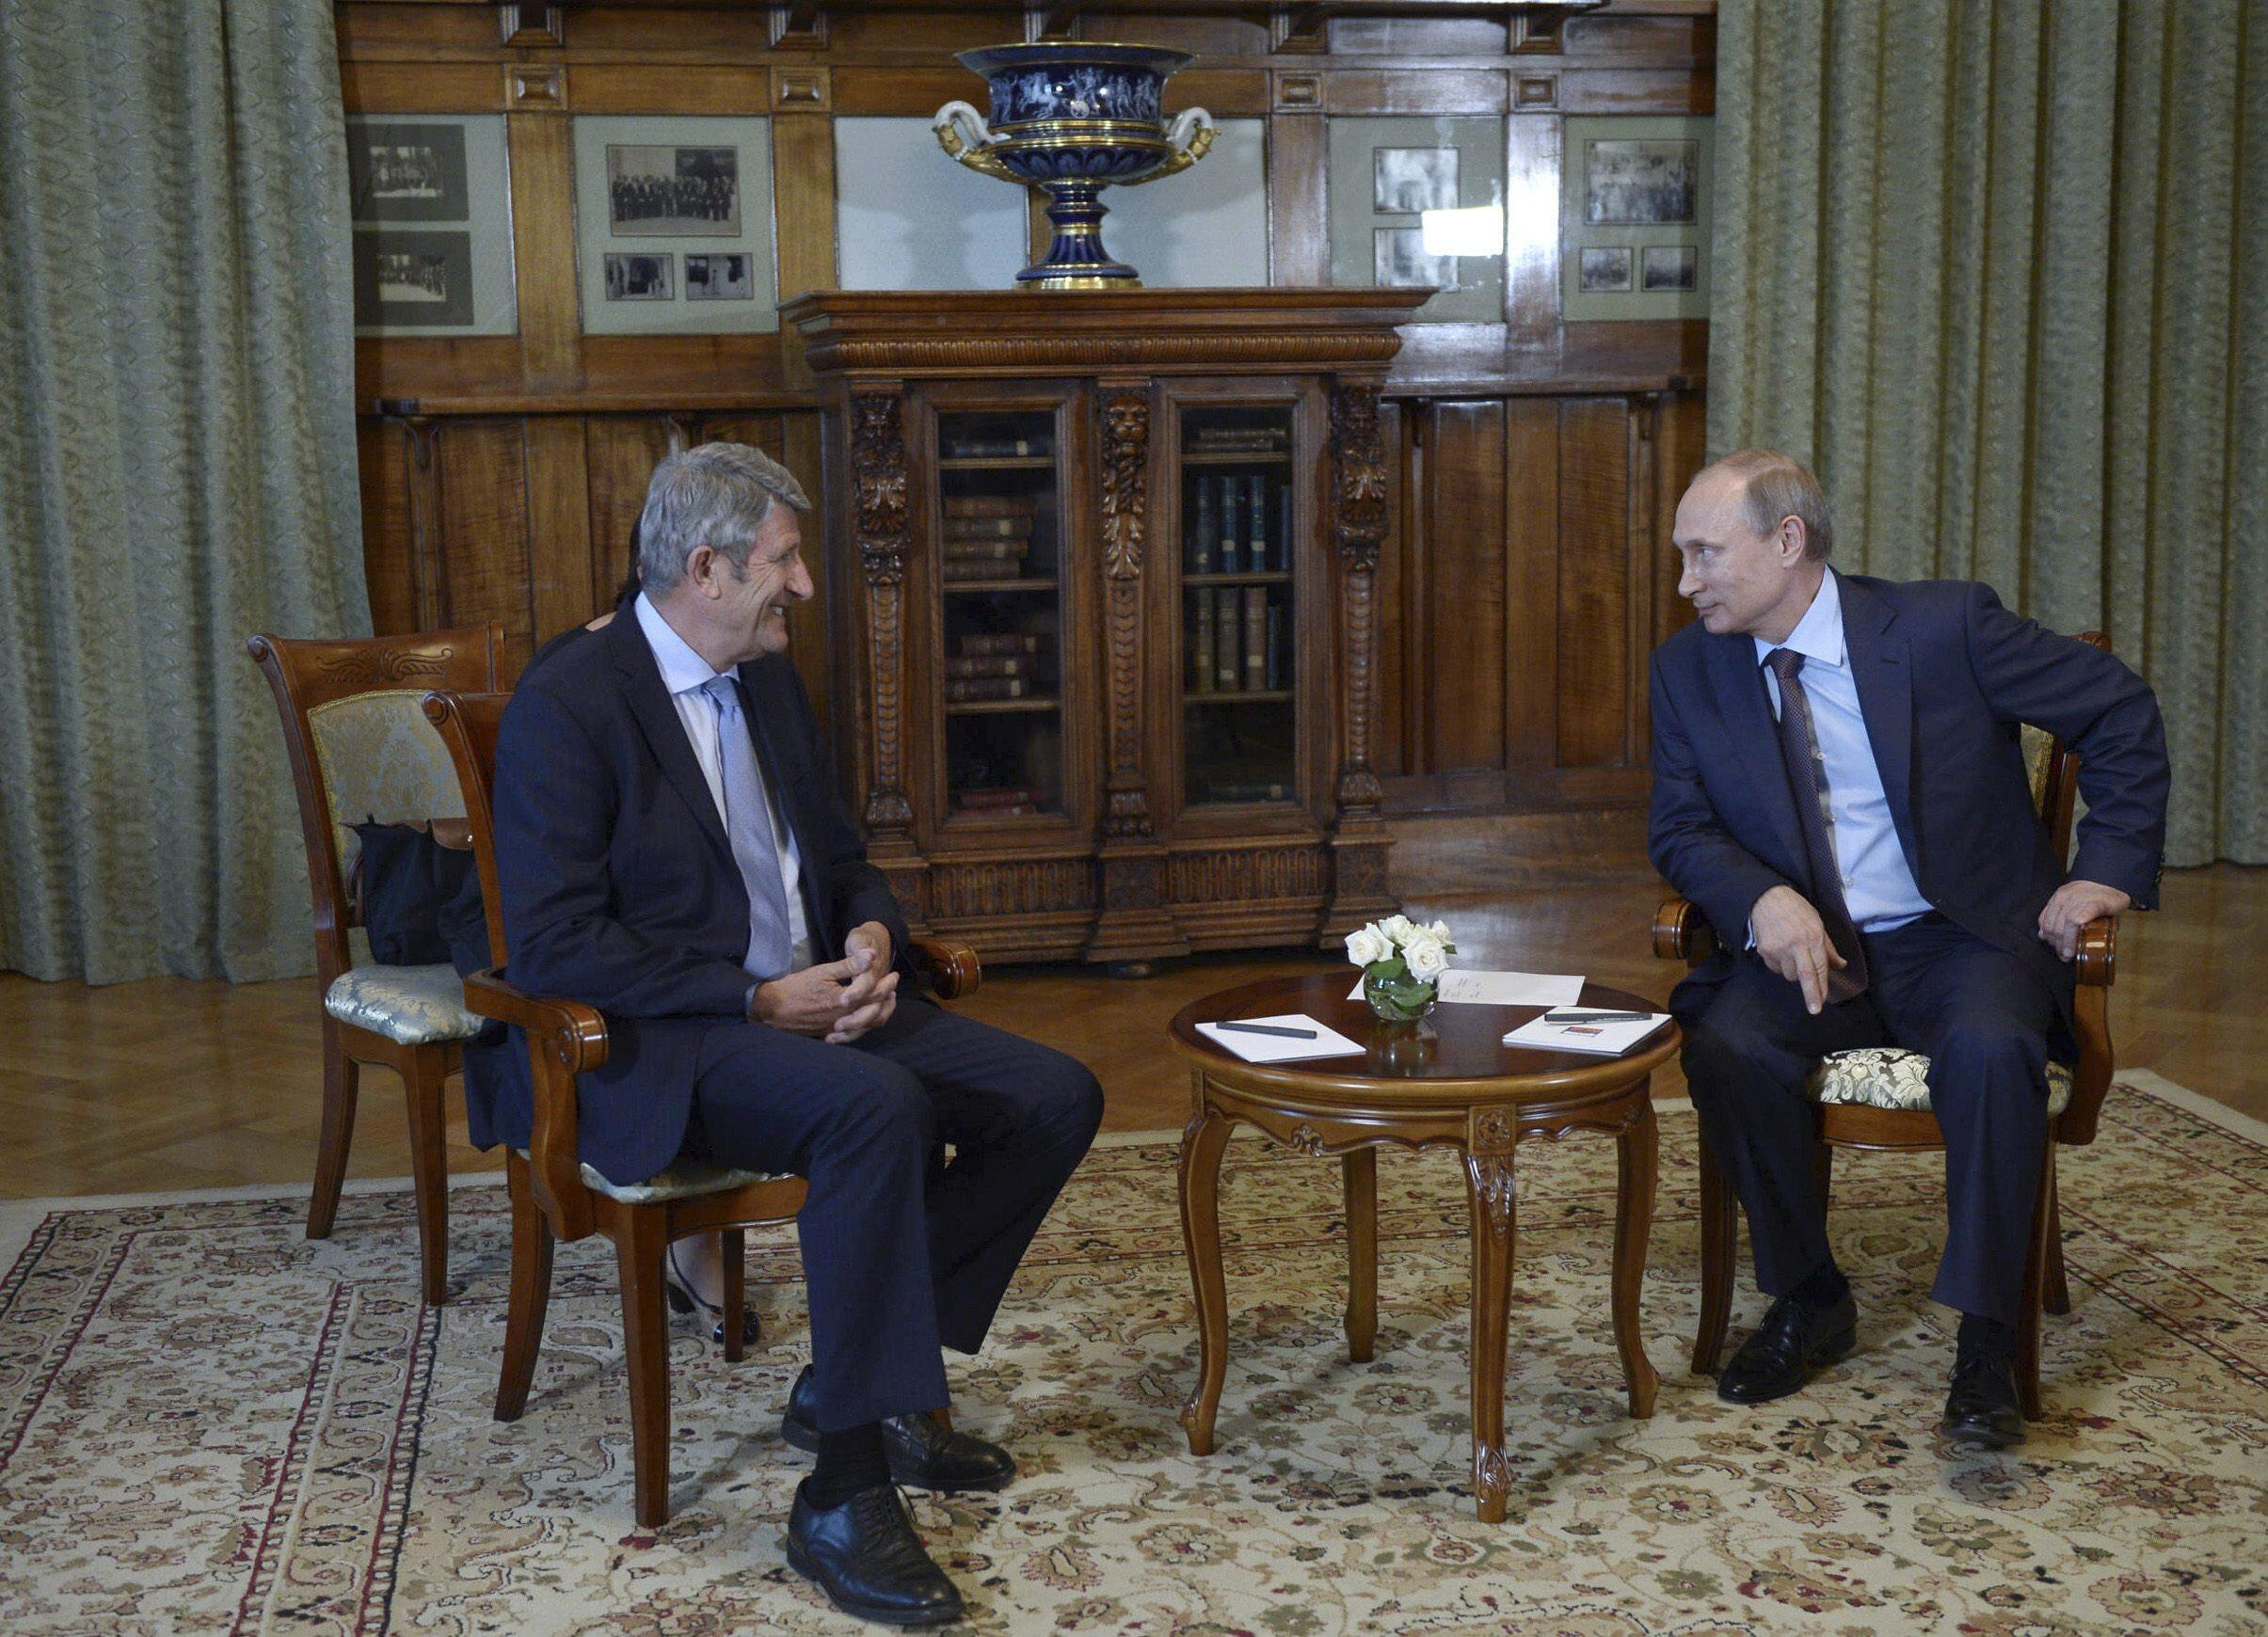 Philippe de Villiers at a meeting with Vladimir Putin in Yalta, August 14, 2014.